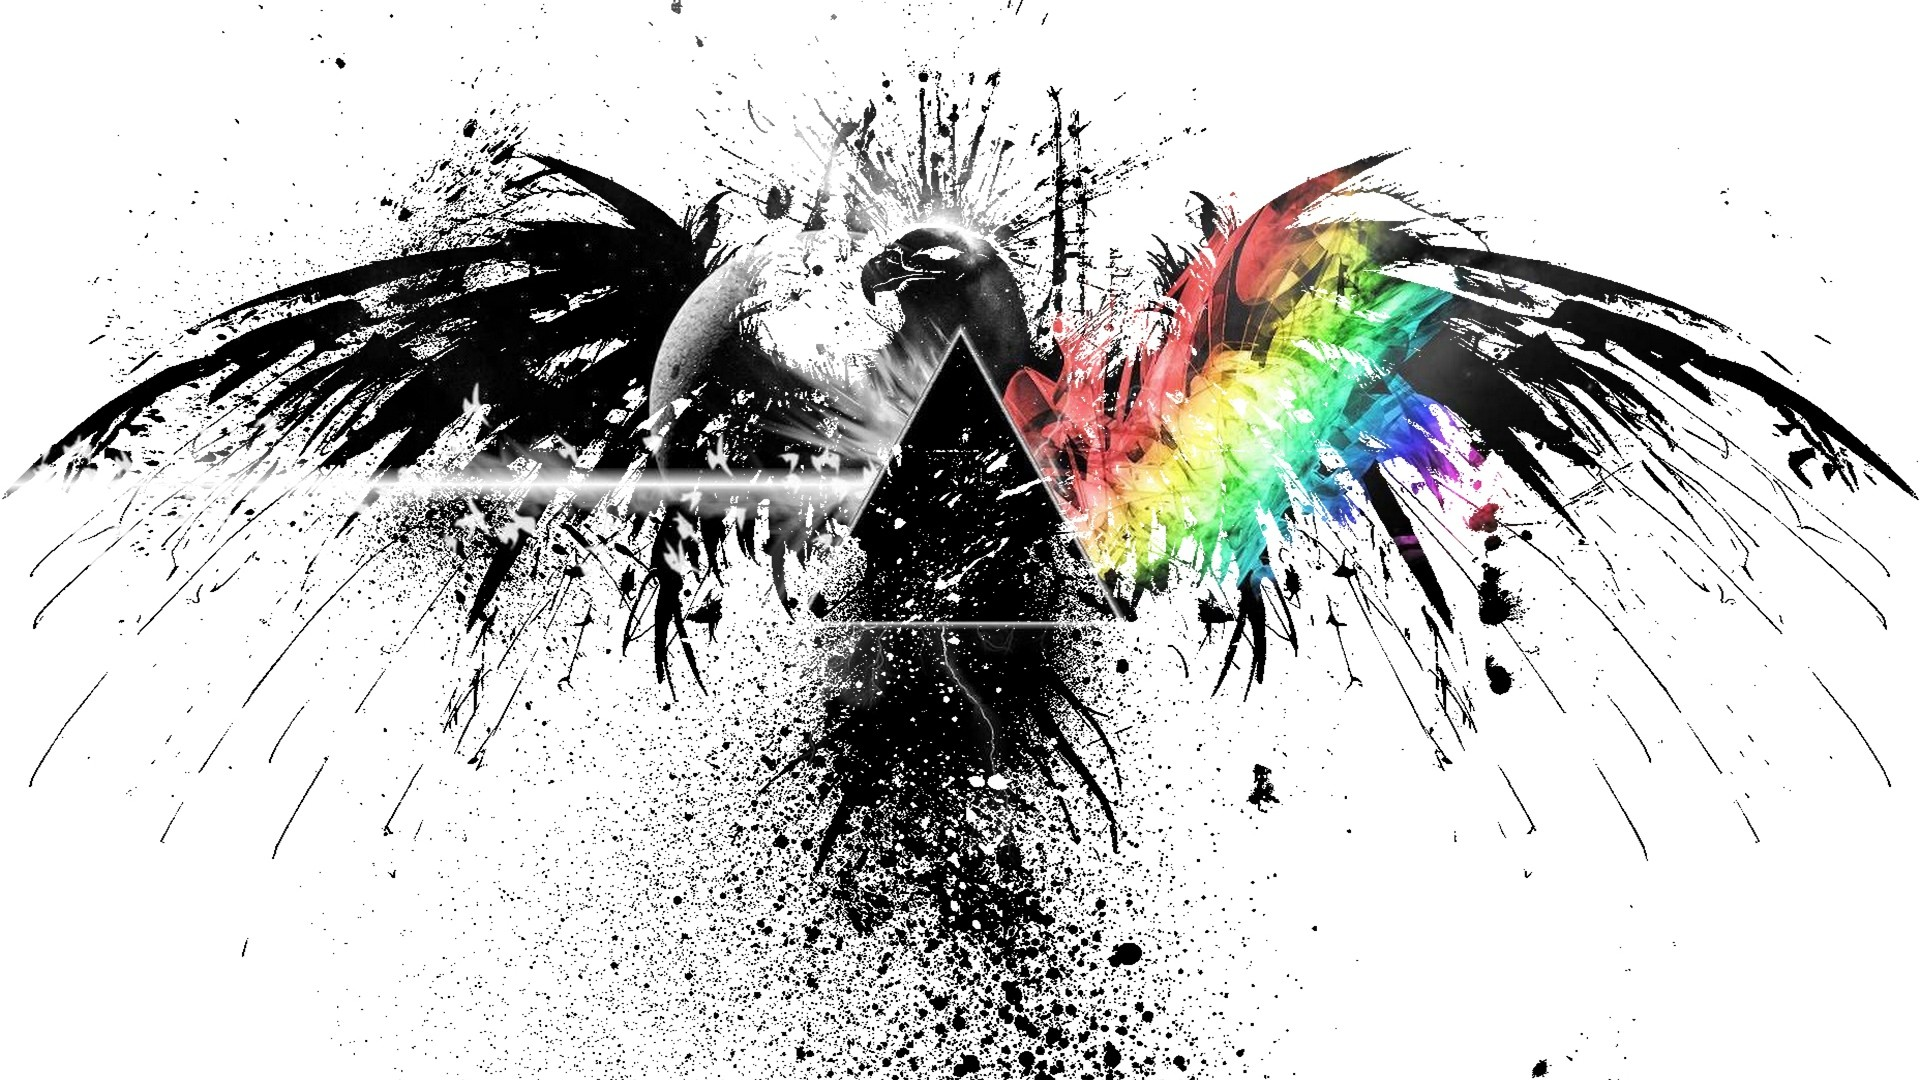 Res: 1920x1080, pink floyd black and white rainbow eagle graffiti spray